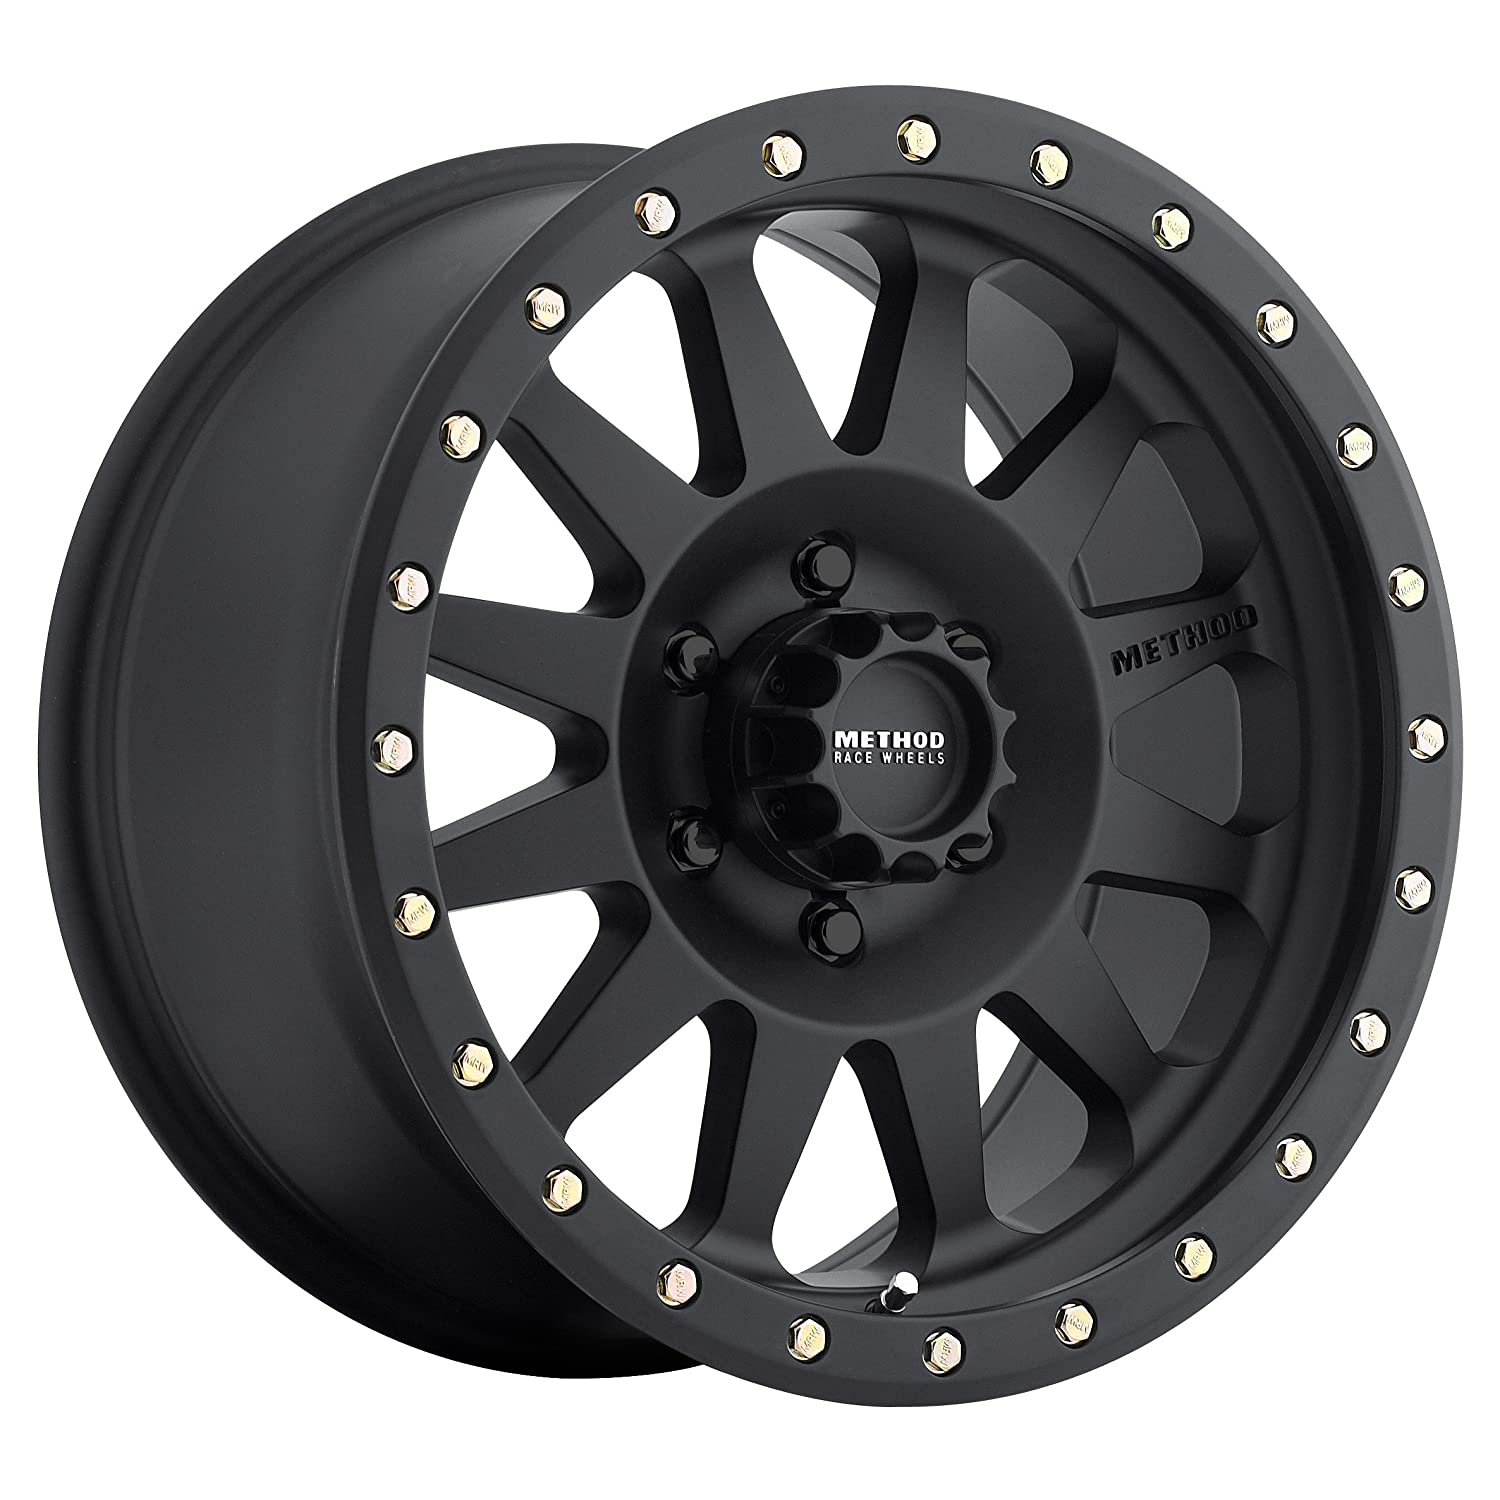 Method Race Wheels Double Standard Matte Black Wheel with Zinc Plated Accent Bolts (16x8'/6x5.5') 0 mm offset MR30468060500